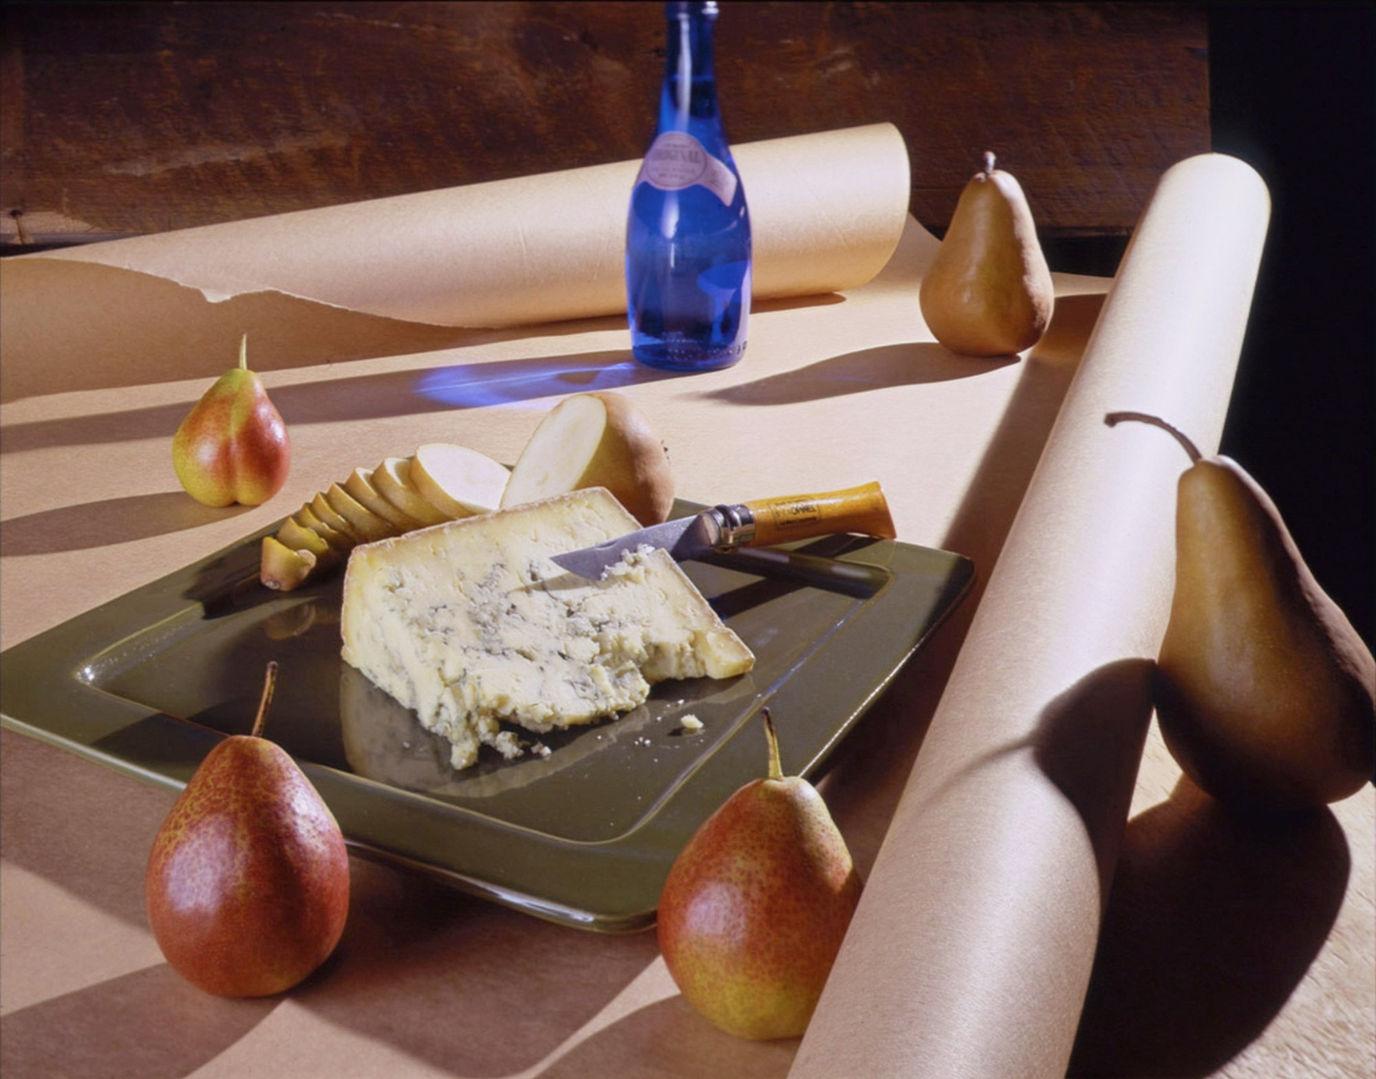 Blue Cheese & Pears